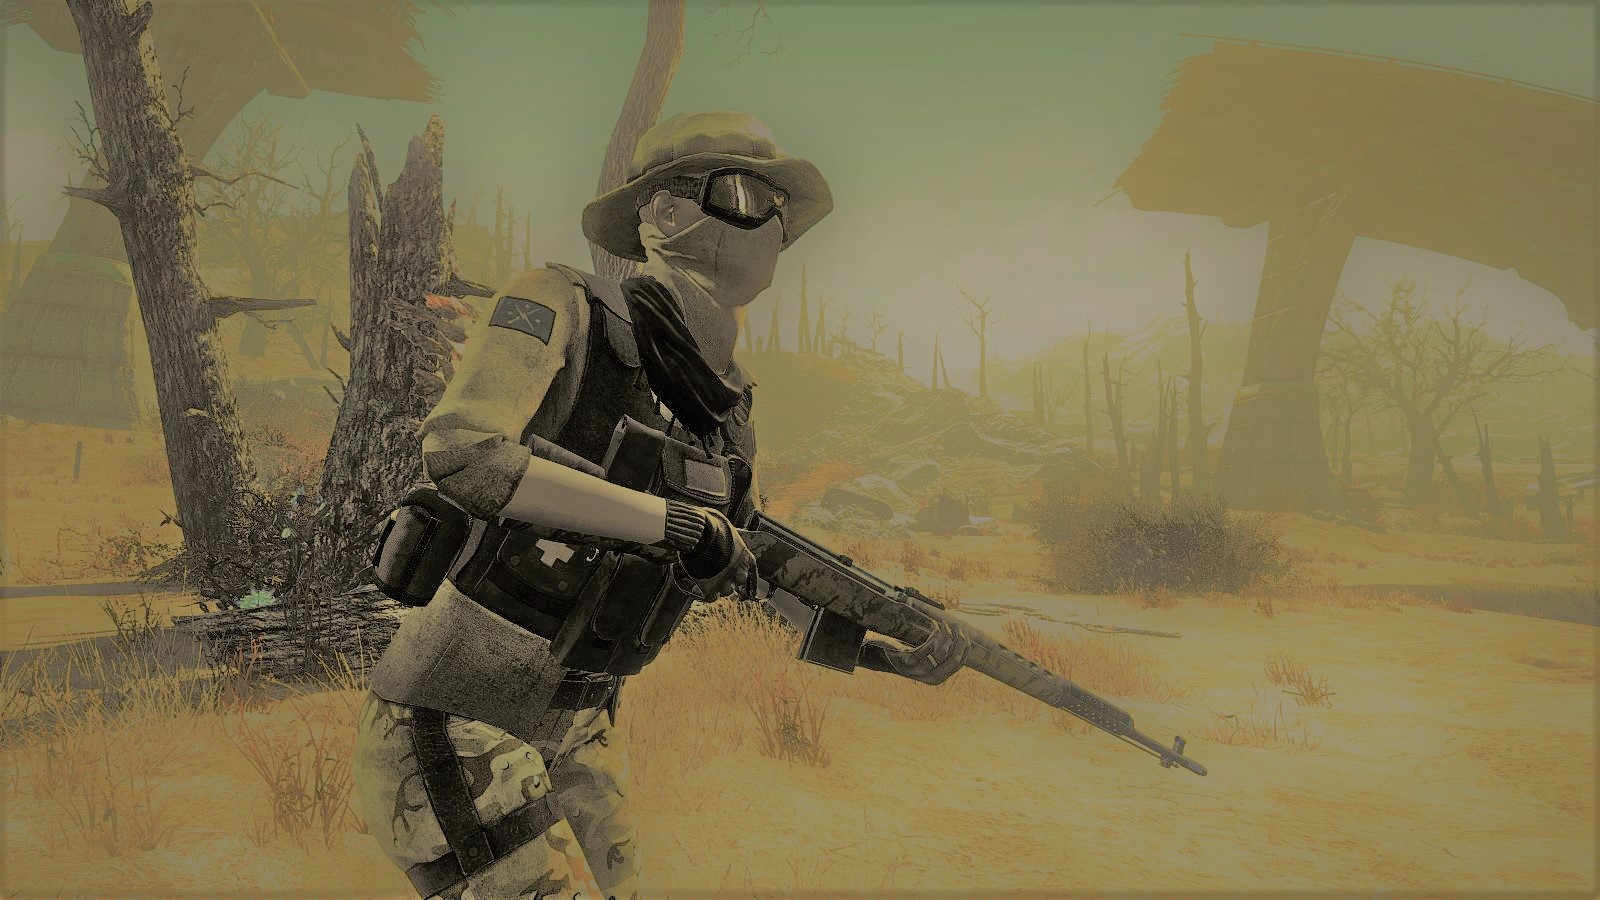 Desert Storm - A collection of Images